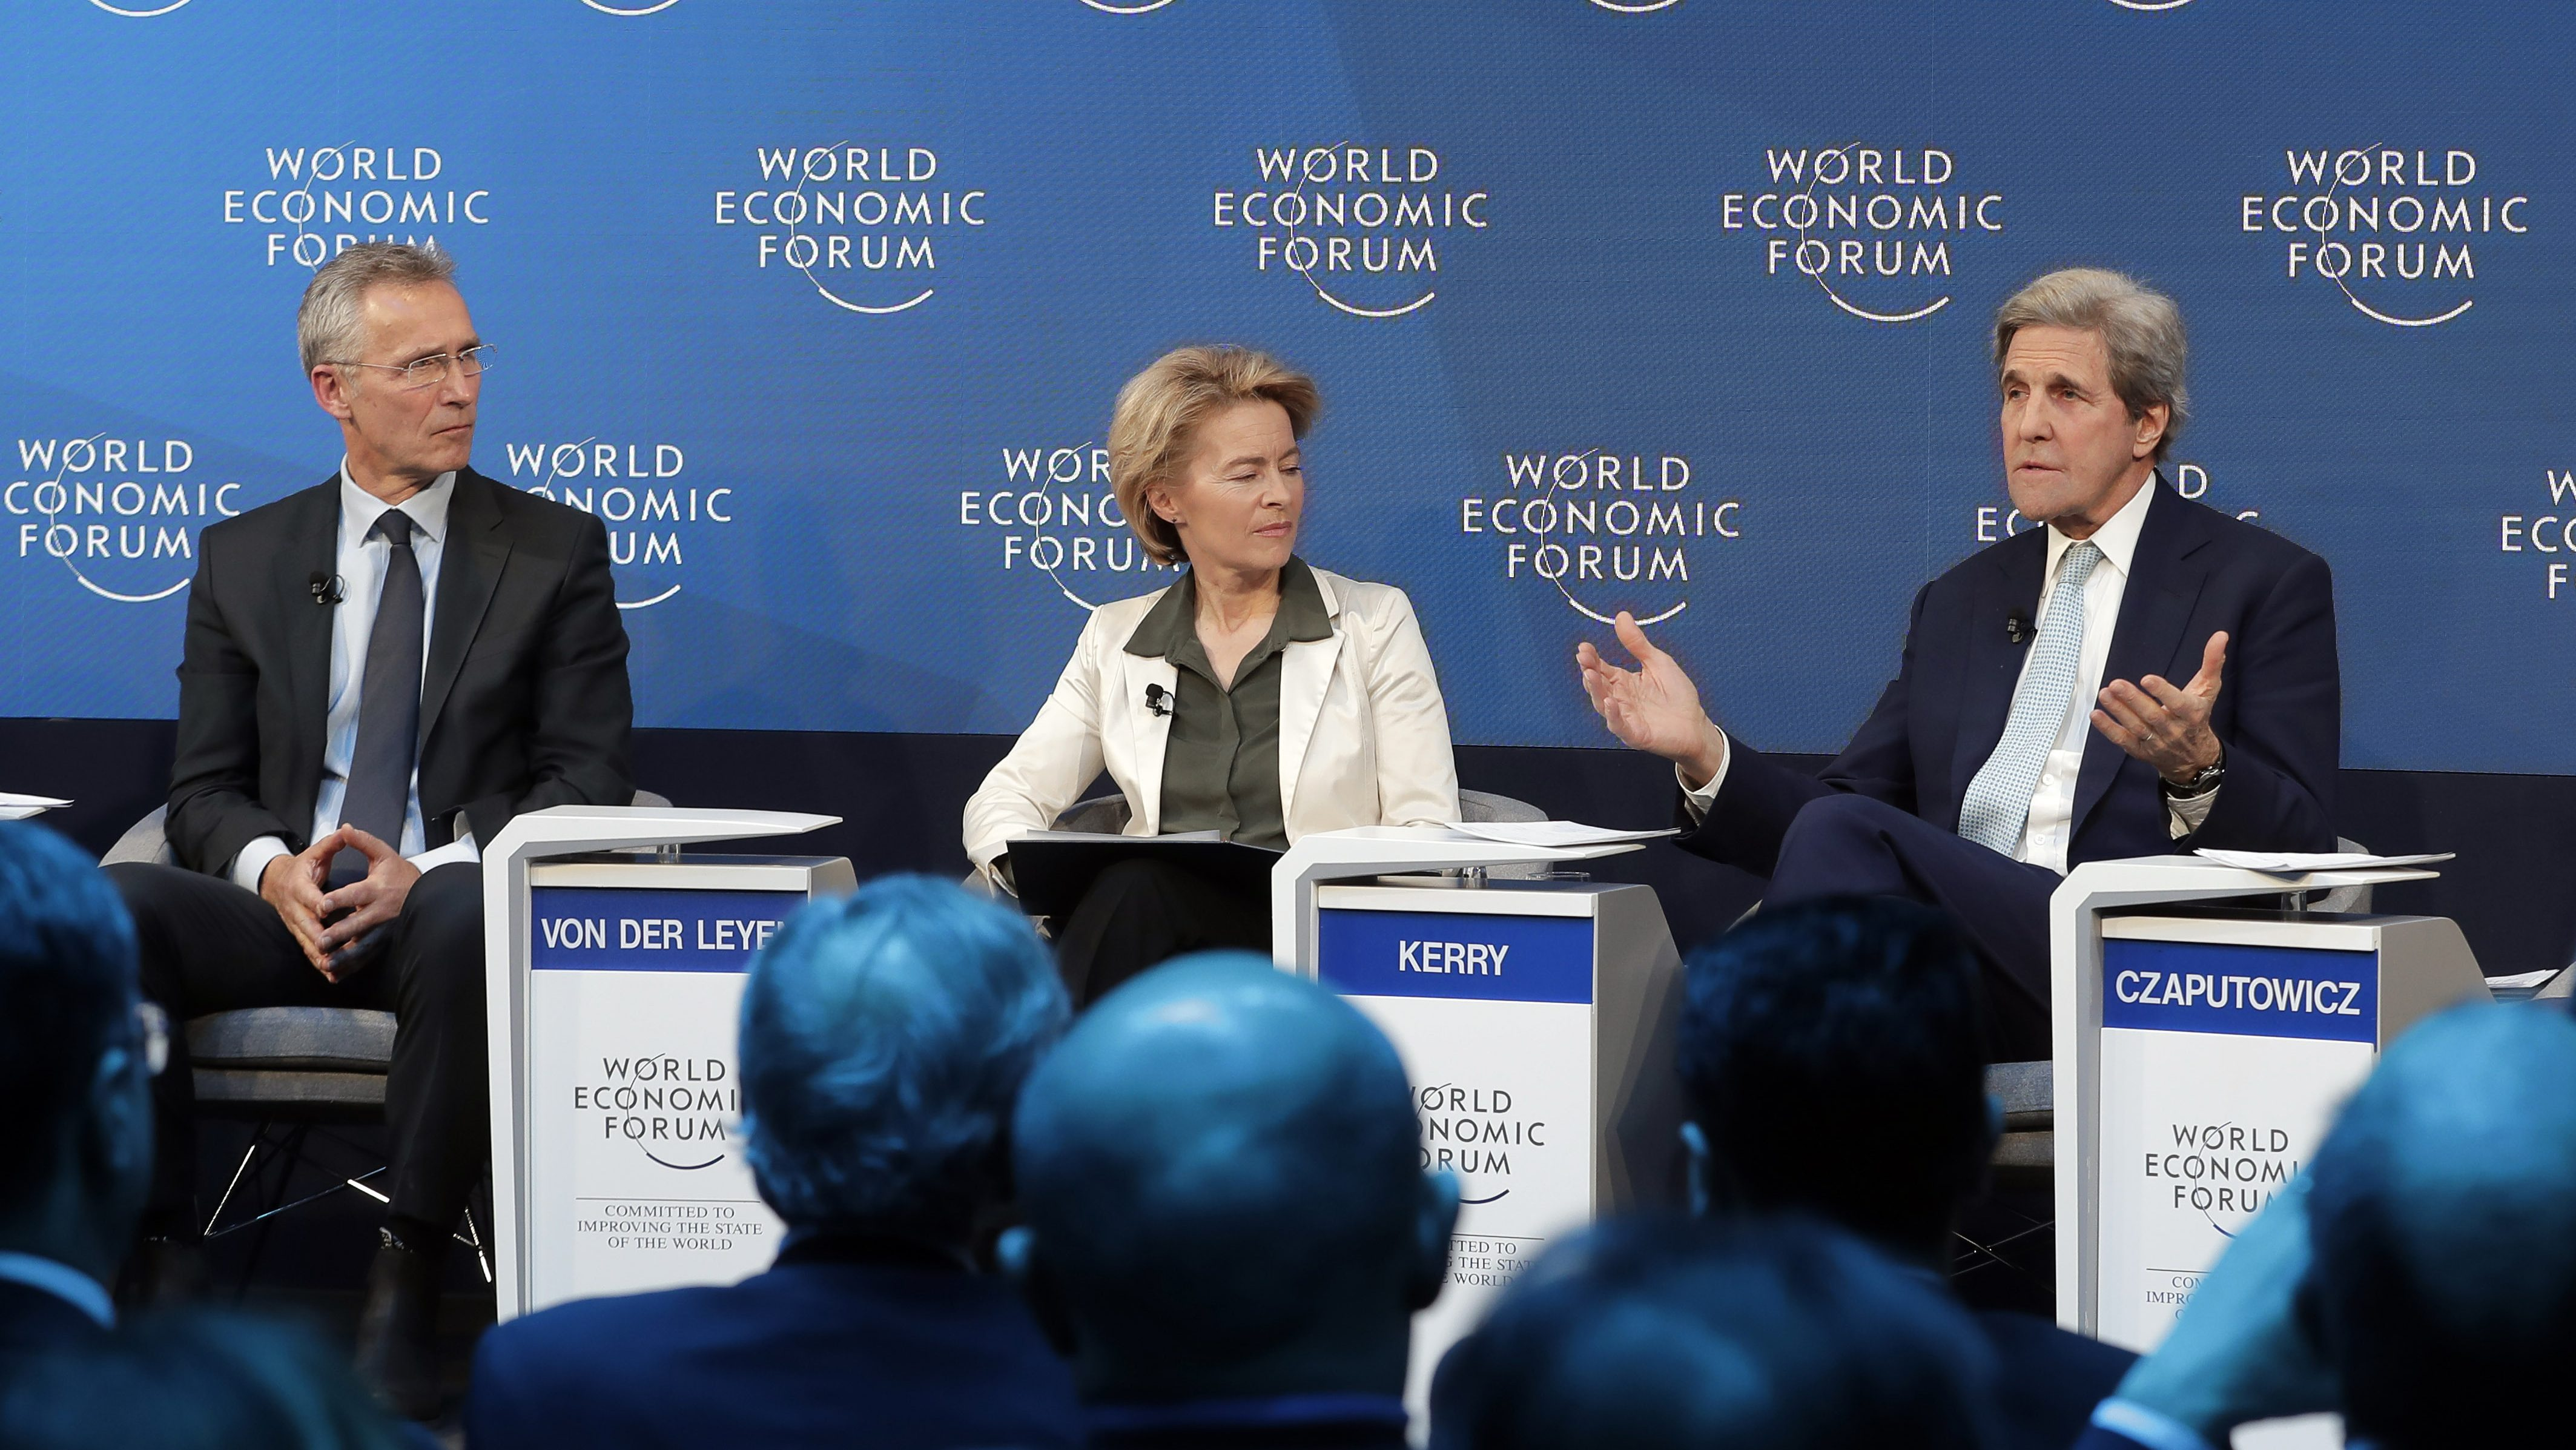 Jens Stoltenberg, Secretary General of NATO, Germany's Minister of Defence Ursula von der Leyen, and former United States Secretary of State John Kerry, participate in a panel discussion at the 2019 meeting of the World Economic Forum in Davos, Switzerland.